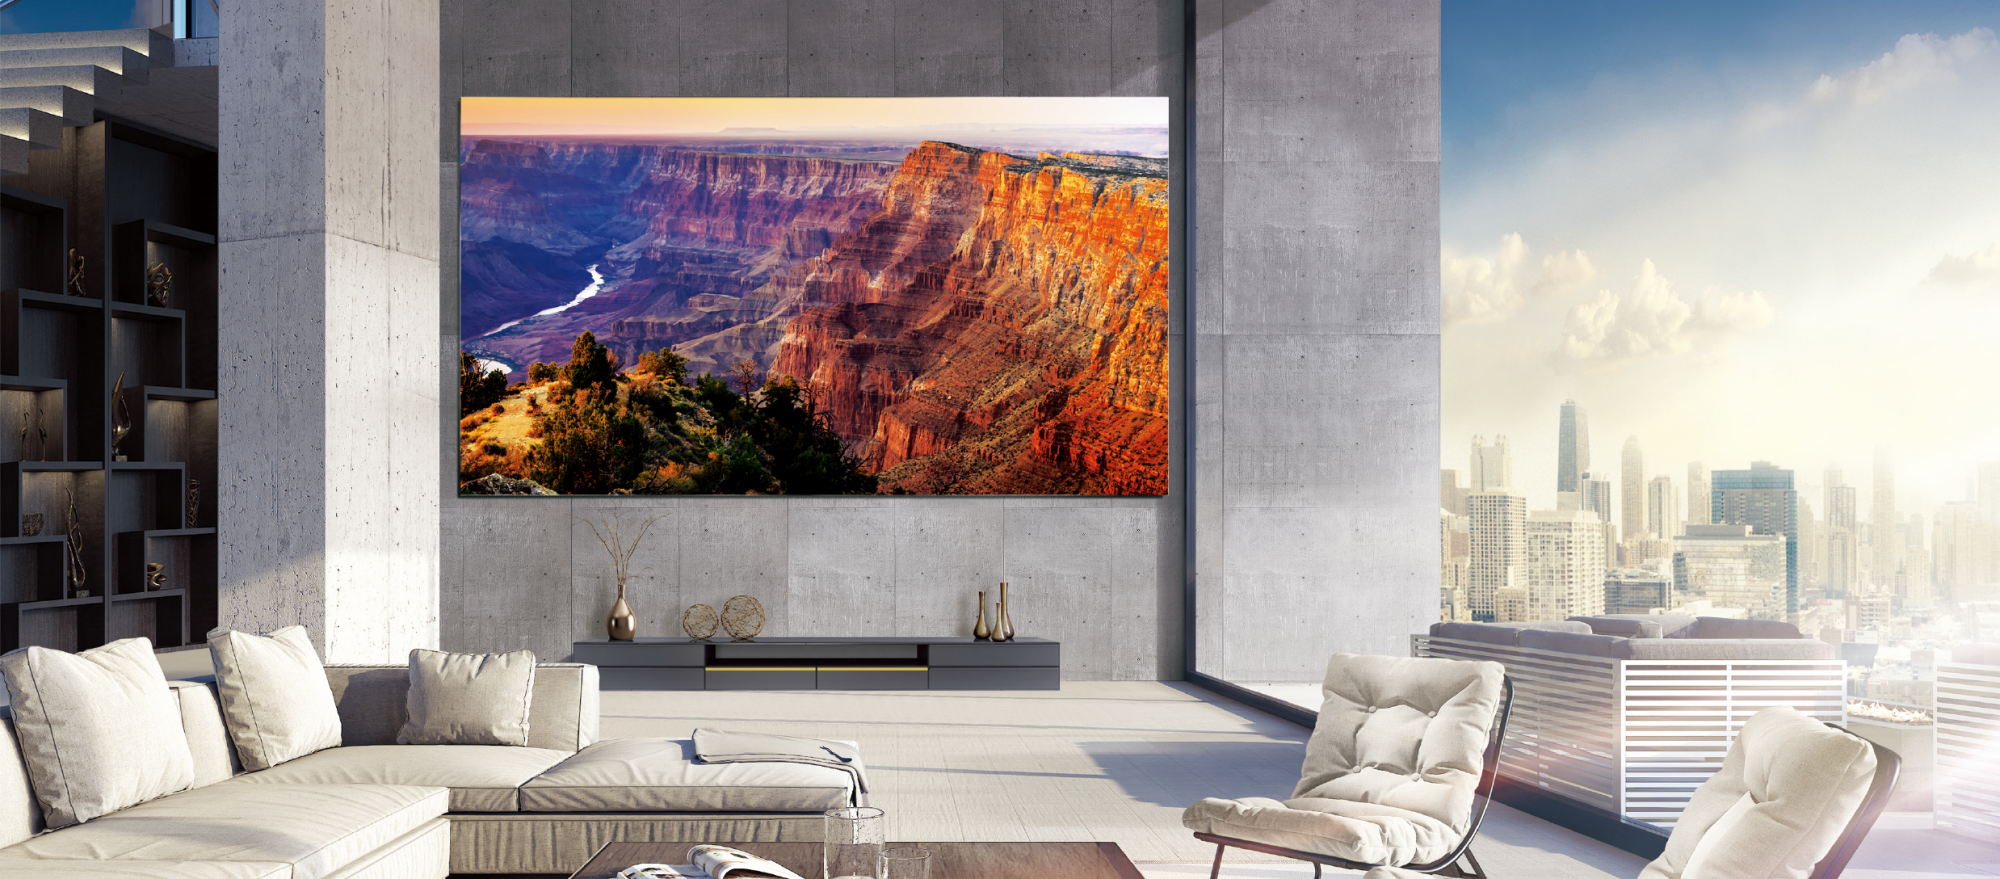 Watch: Why Is Samsung's The Wall—the Crème De La Crème of TVs—So Groundbreaking?